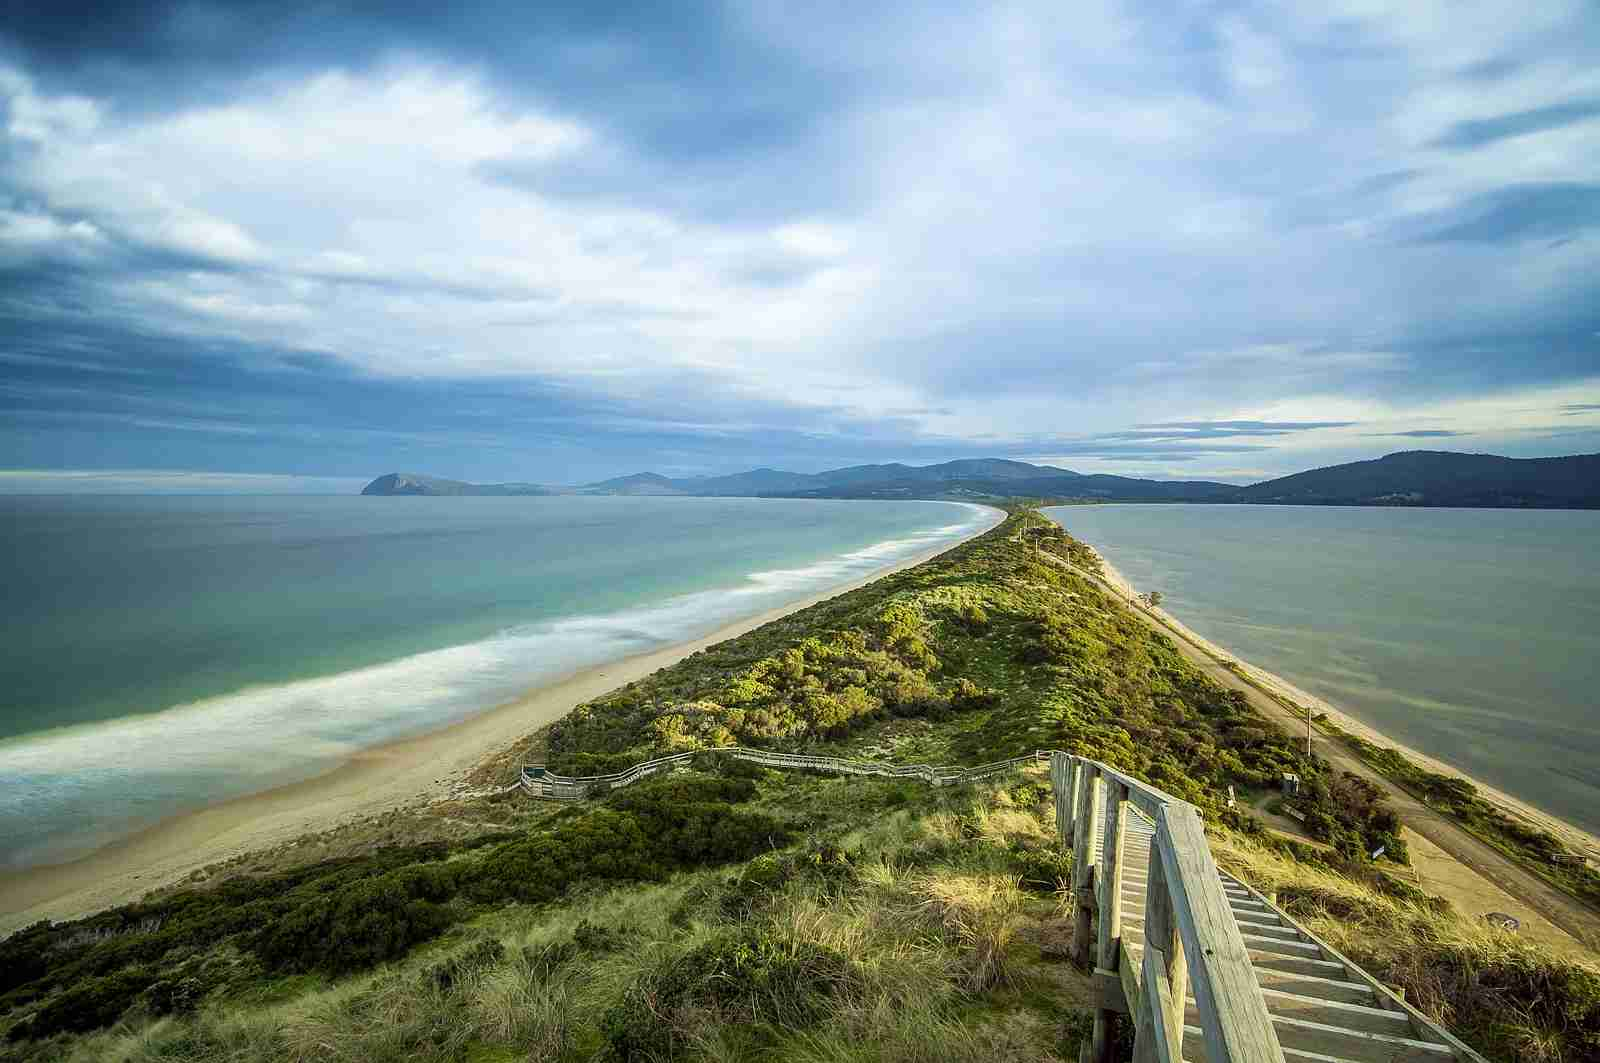 The Isthmus connecting the North and South Bruny Islands, Tasmania. (Photo via Shutterstock)